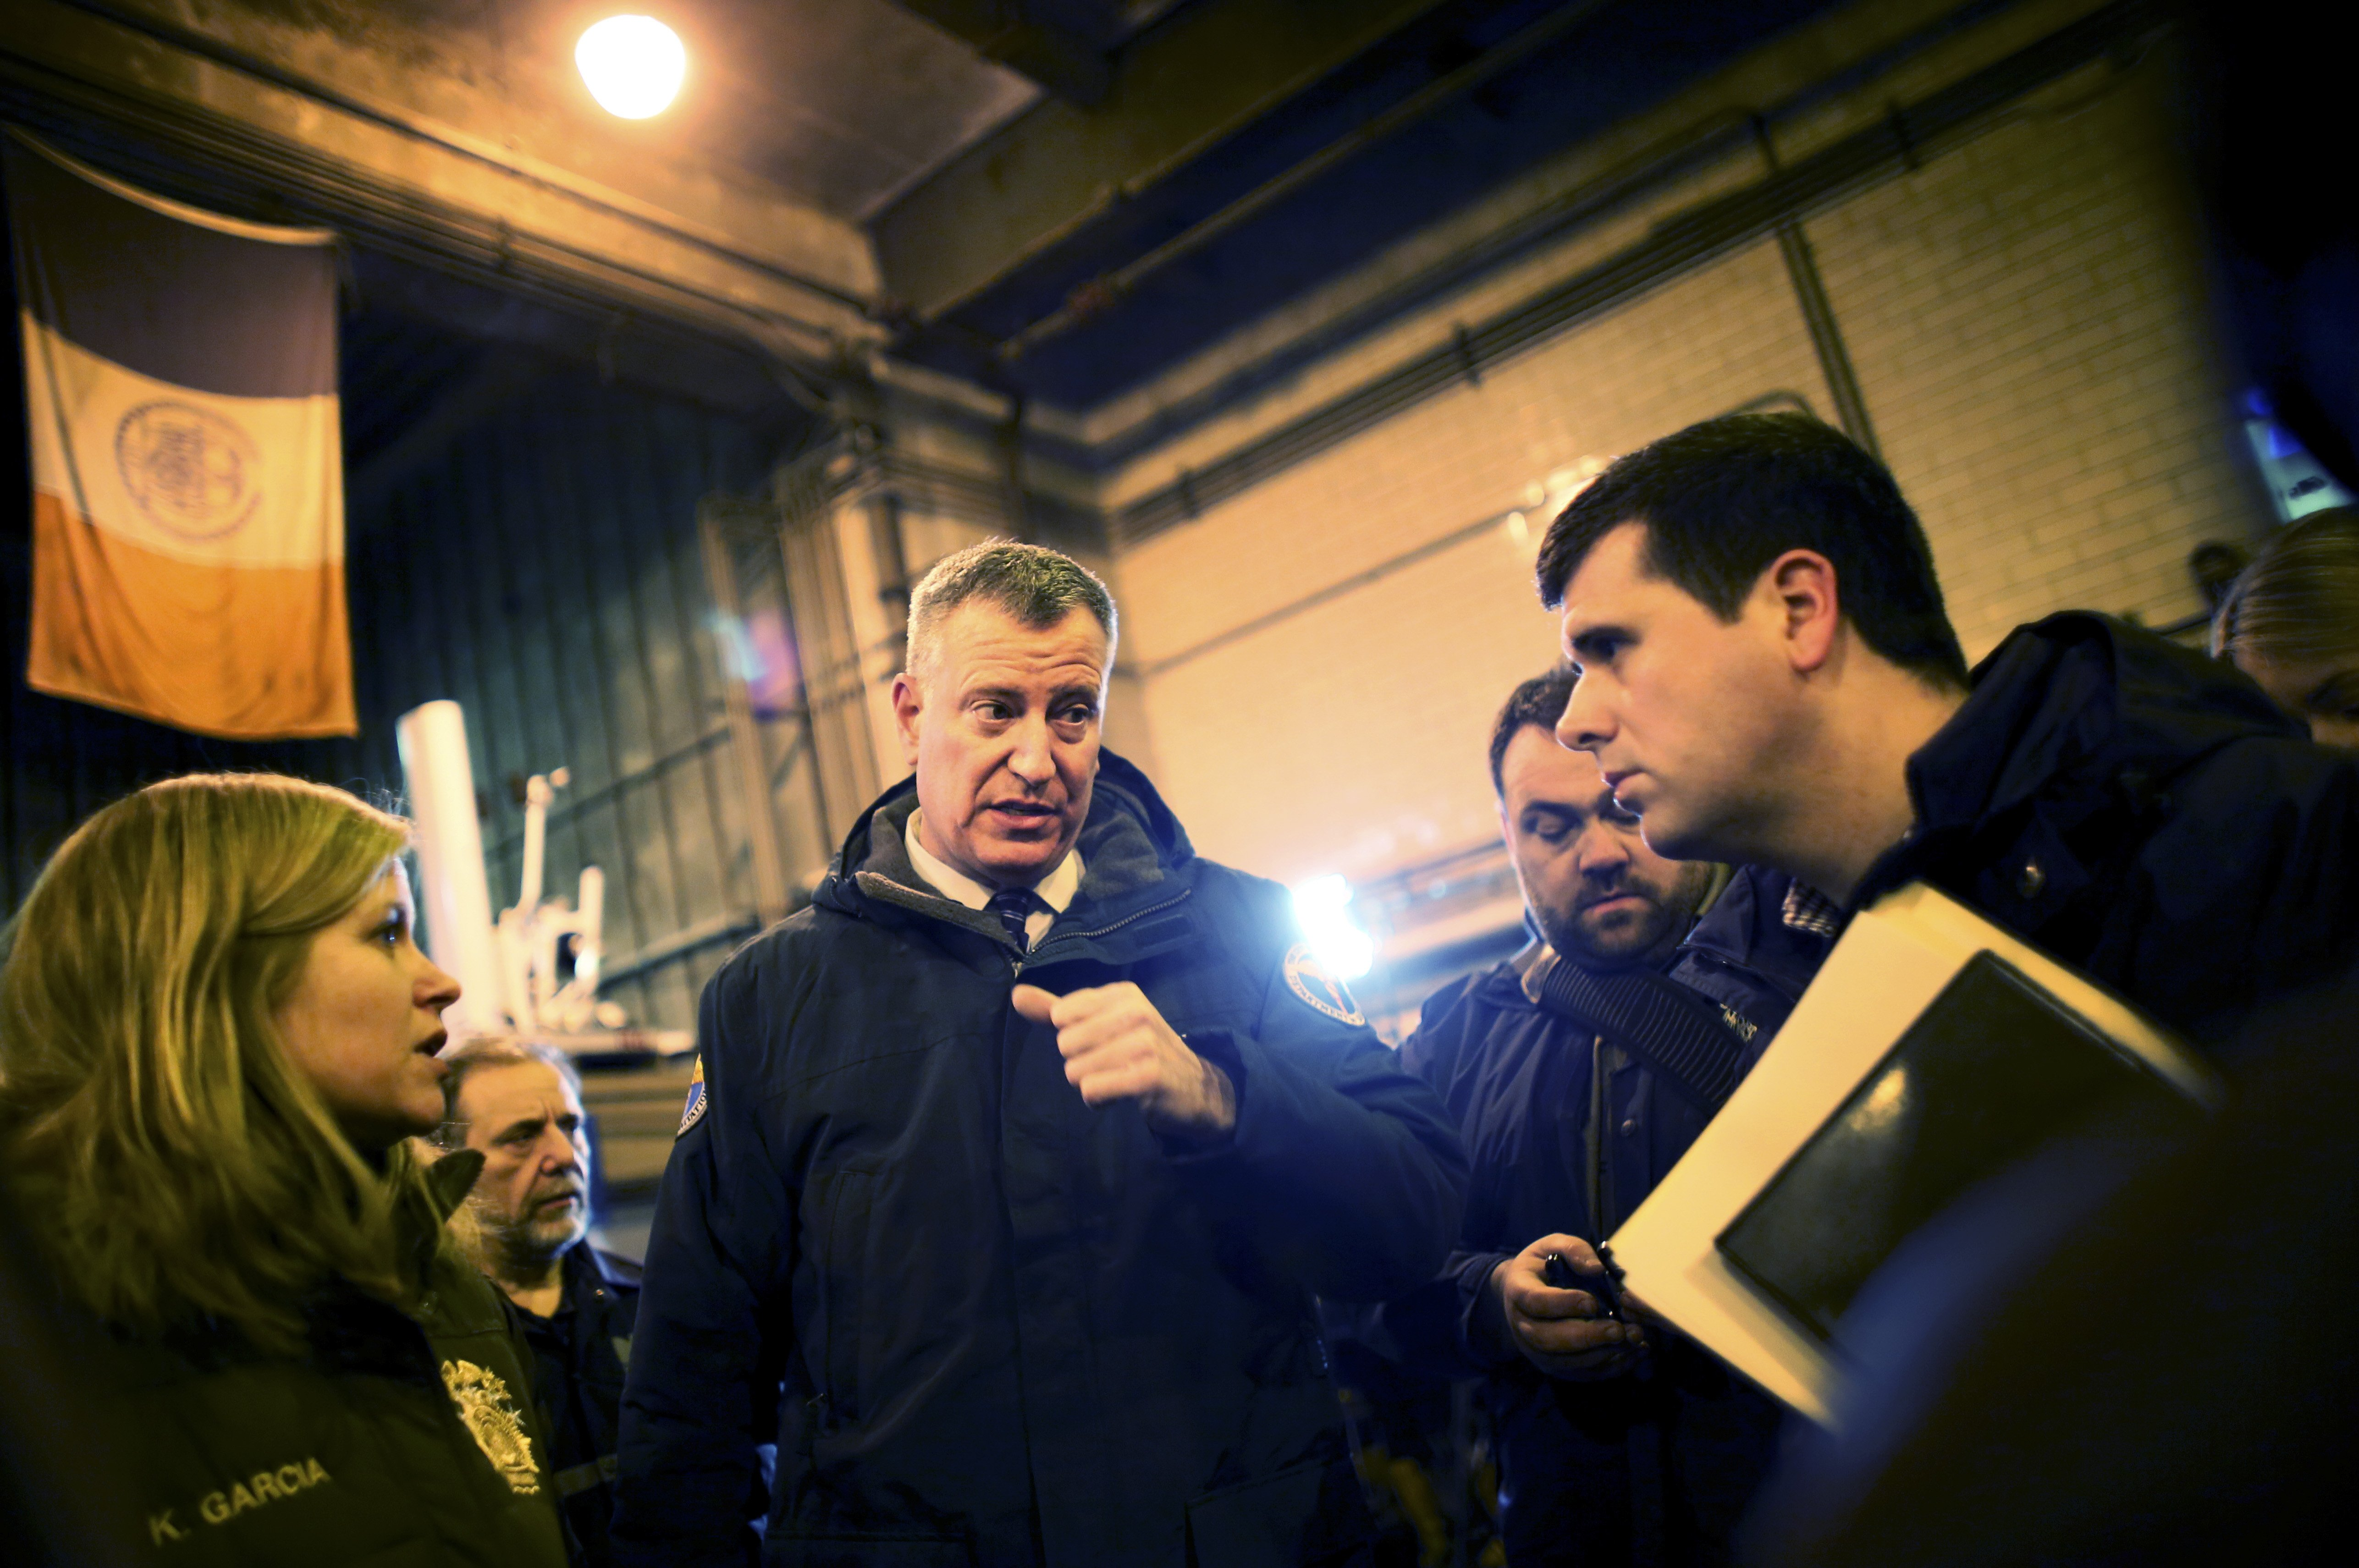 New York City Mayor Bill de Blasio exits a news conference with Department of Sanitation workers in preparation for a blizzard in New York City, Jan. 26, 2015.